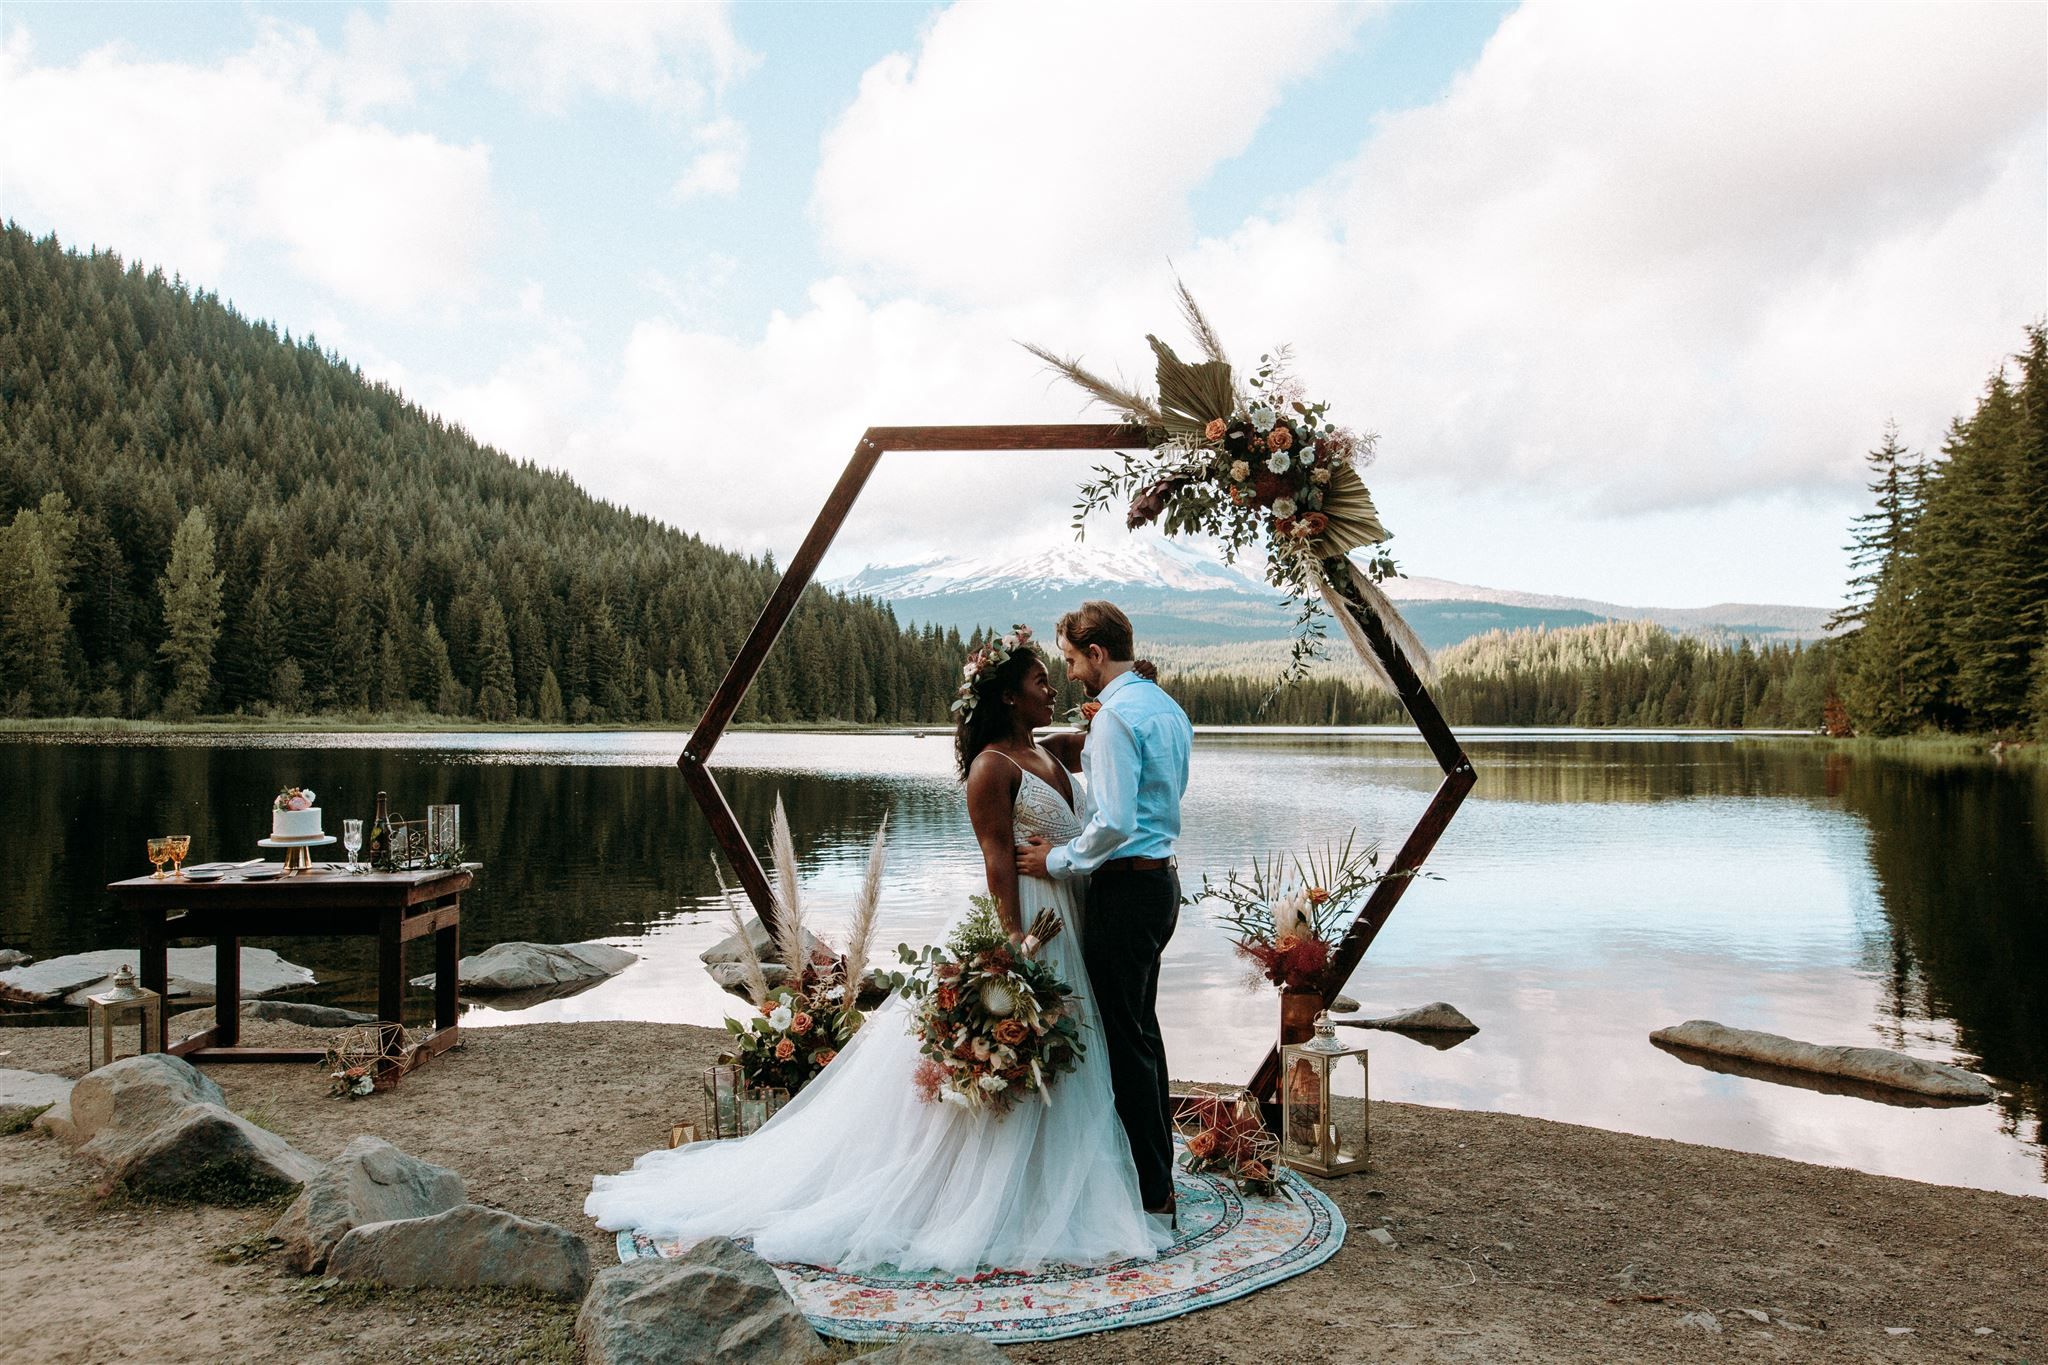 A Boho Elopement Styled Shoot at Trillium Lake on Mount Hood in Oregon